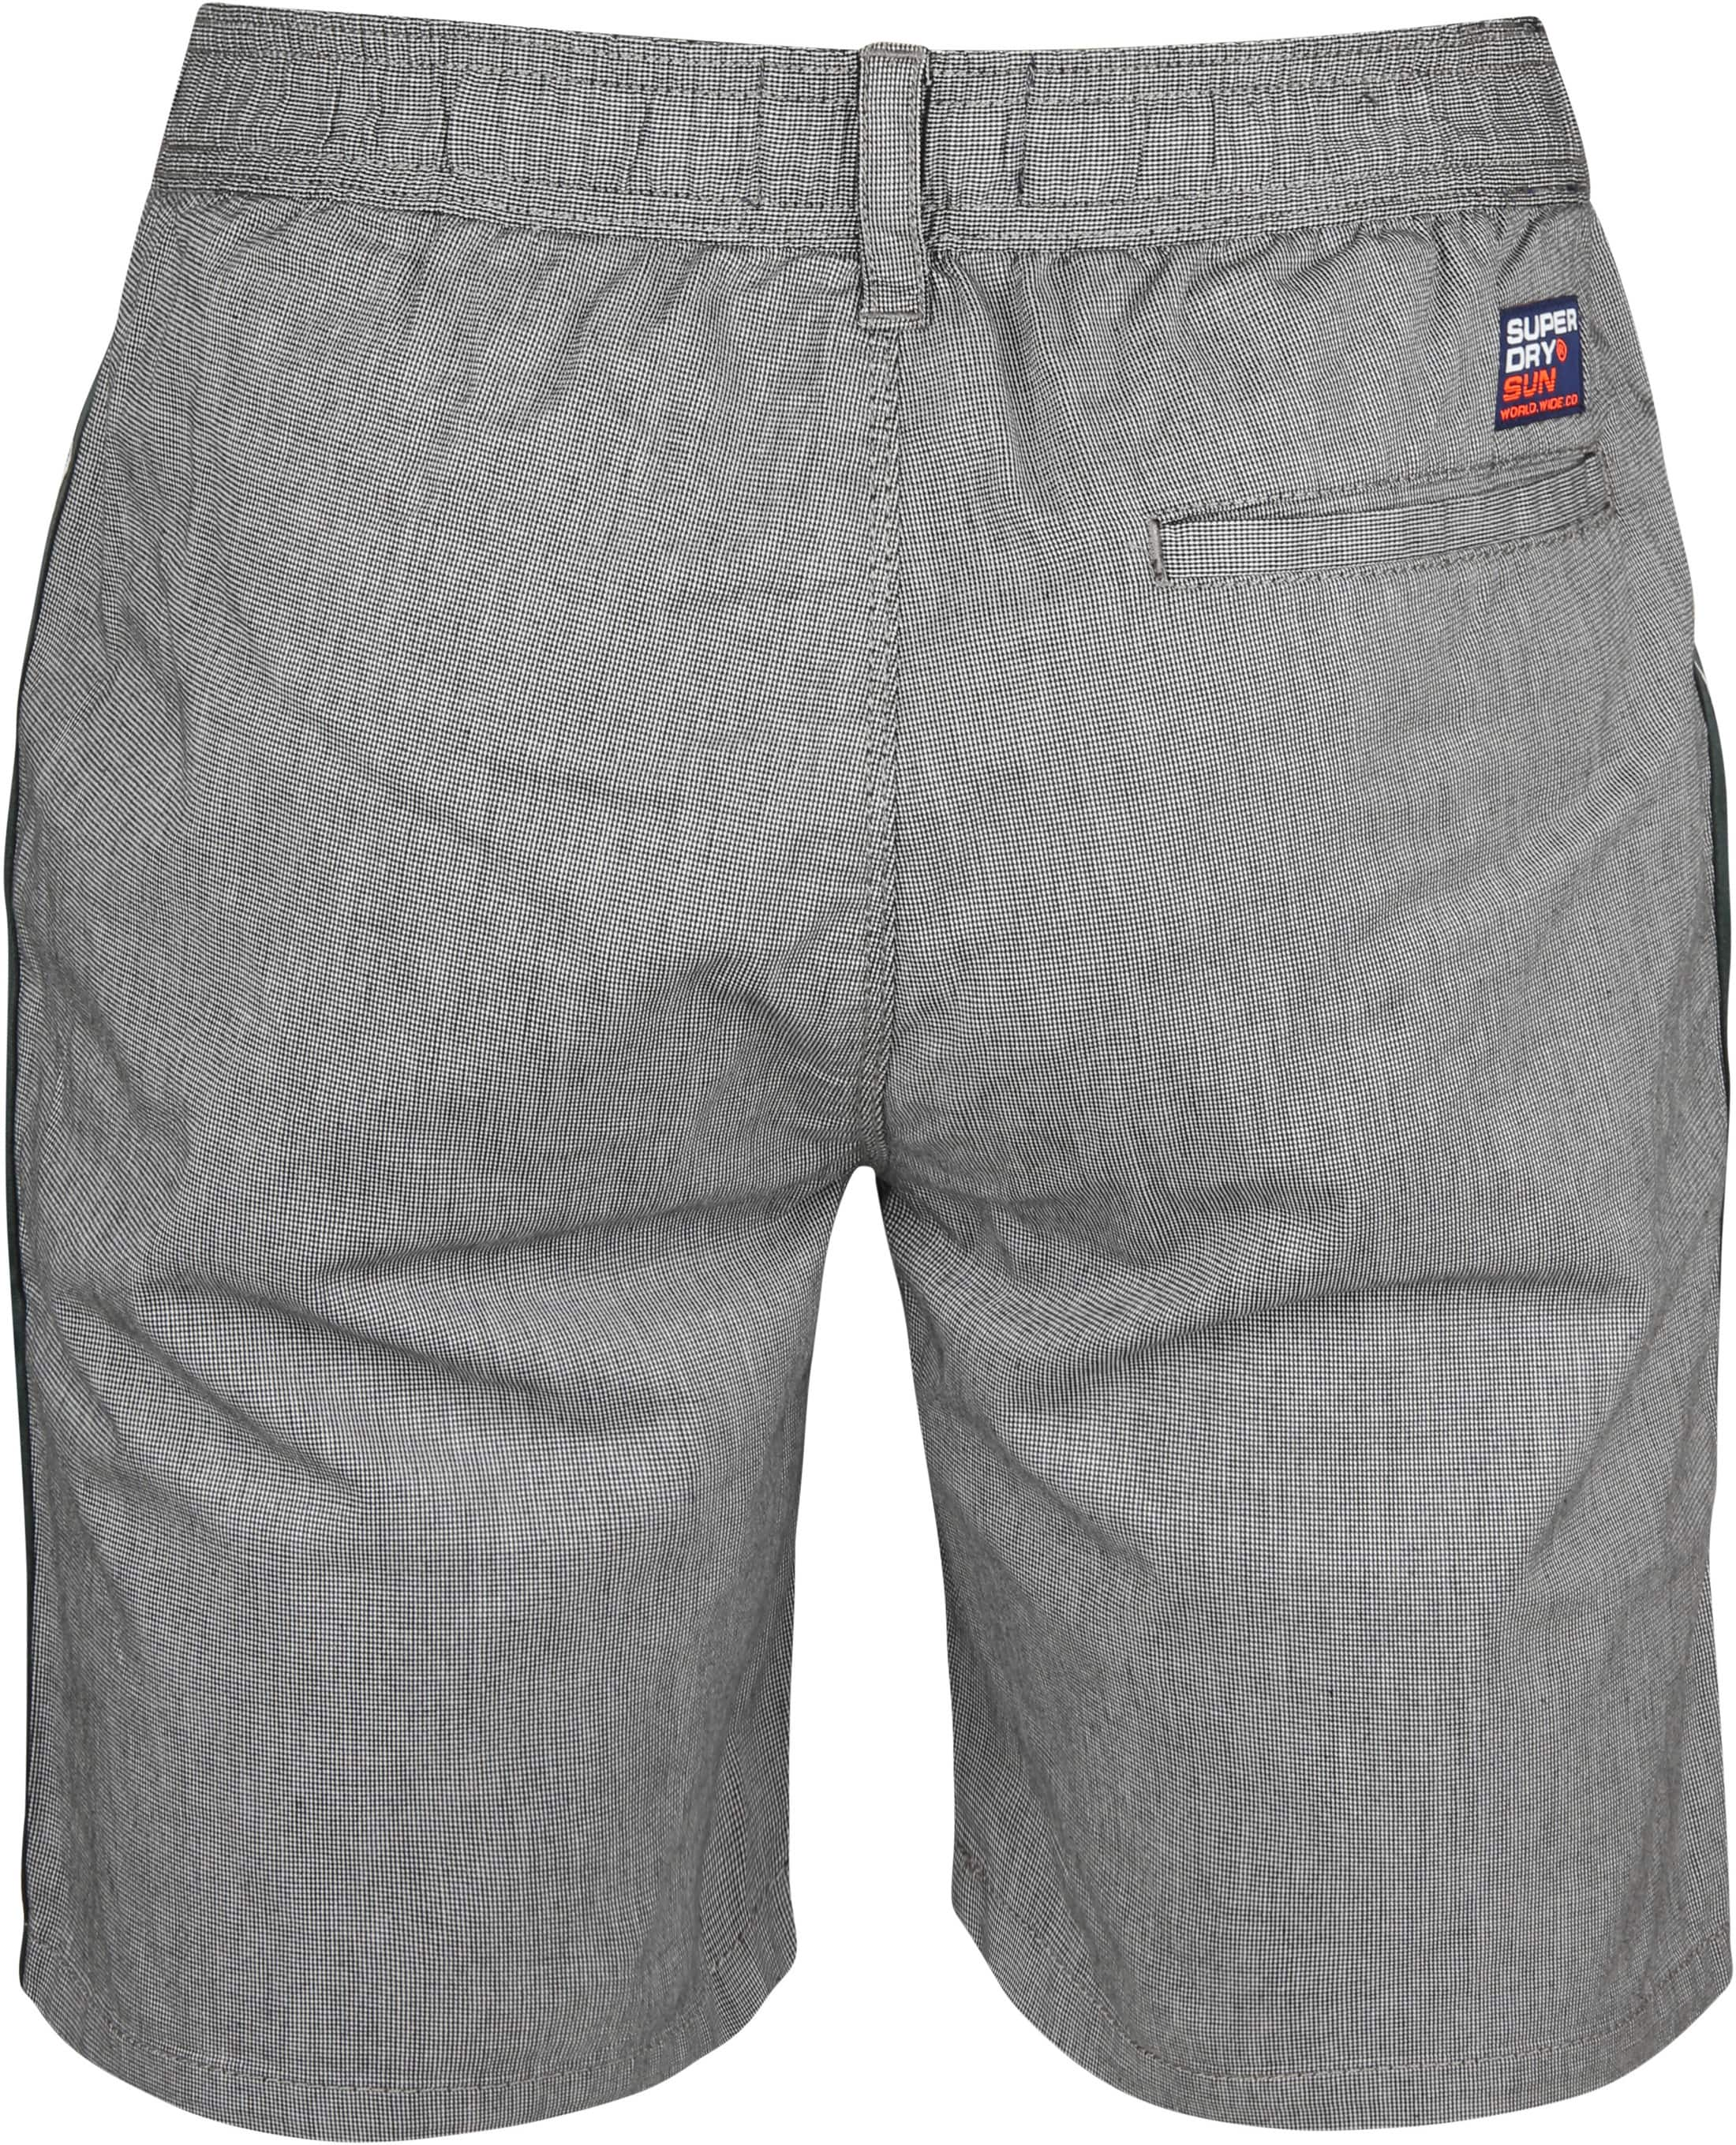 Superdry Sunscorched Short Stripe Grey foto 4